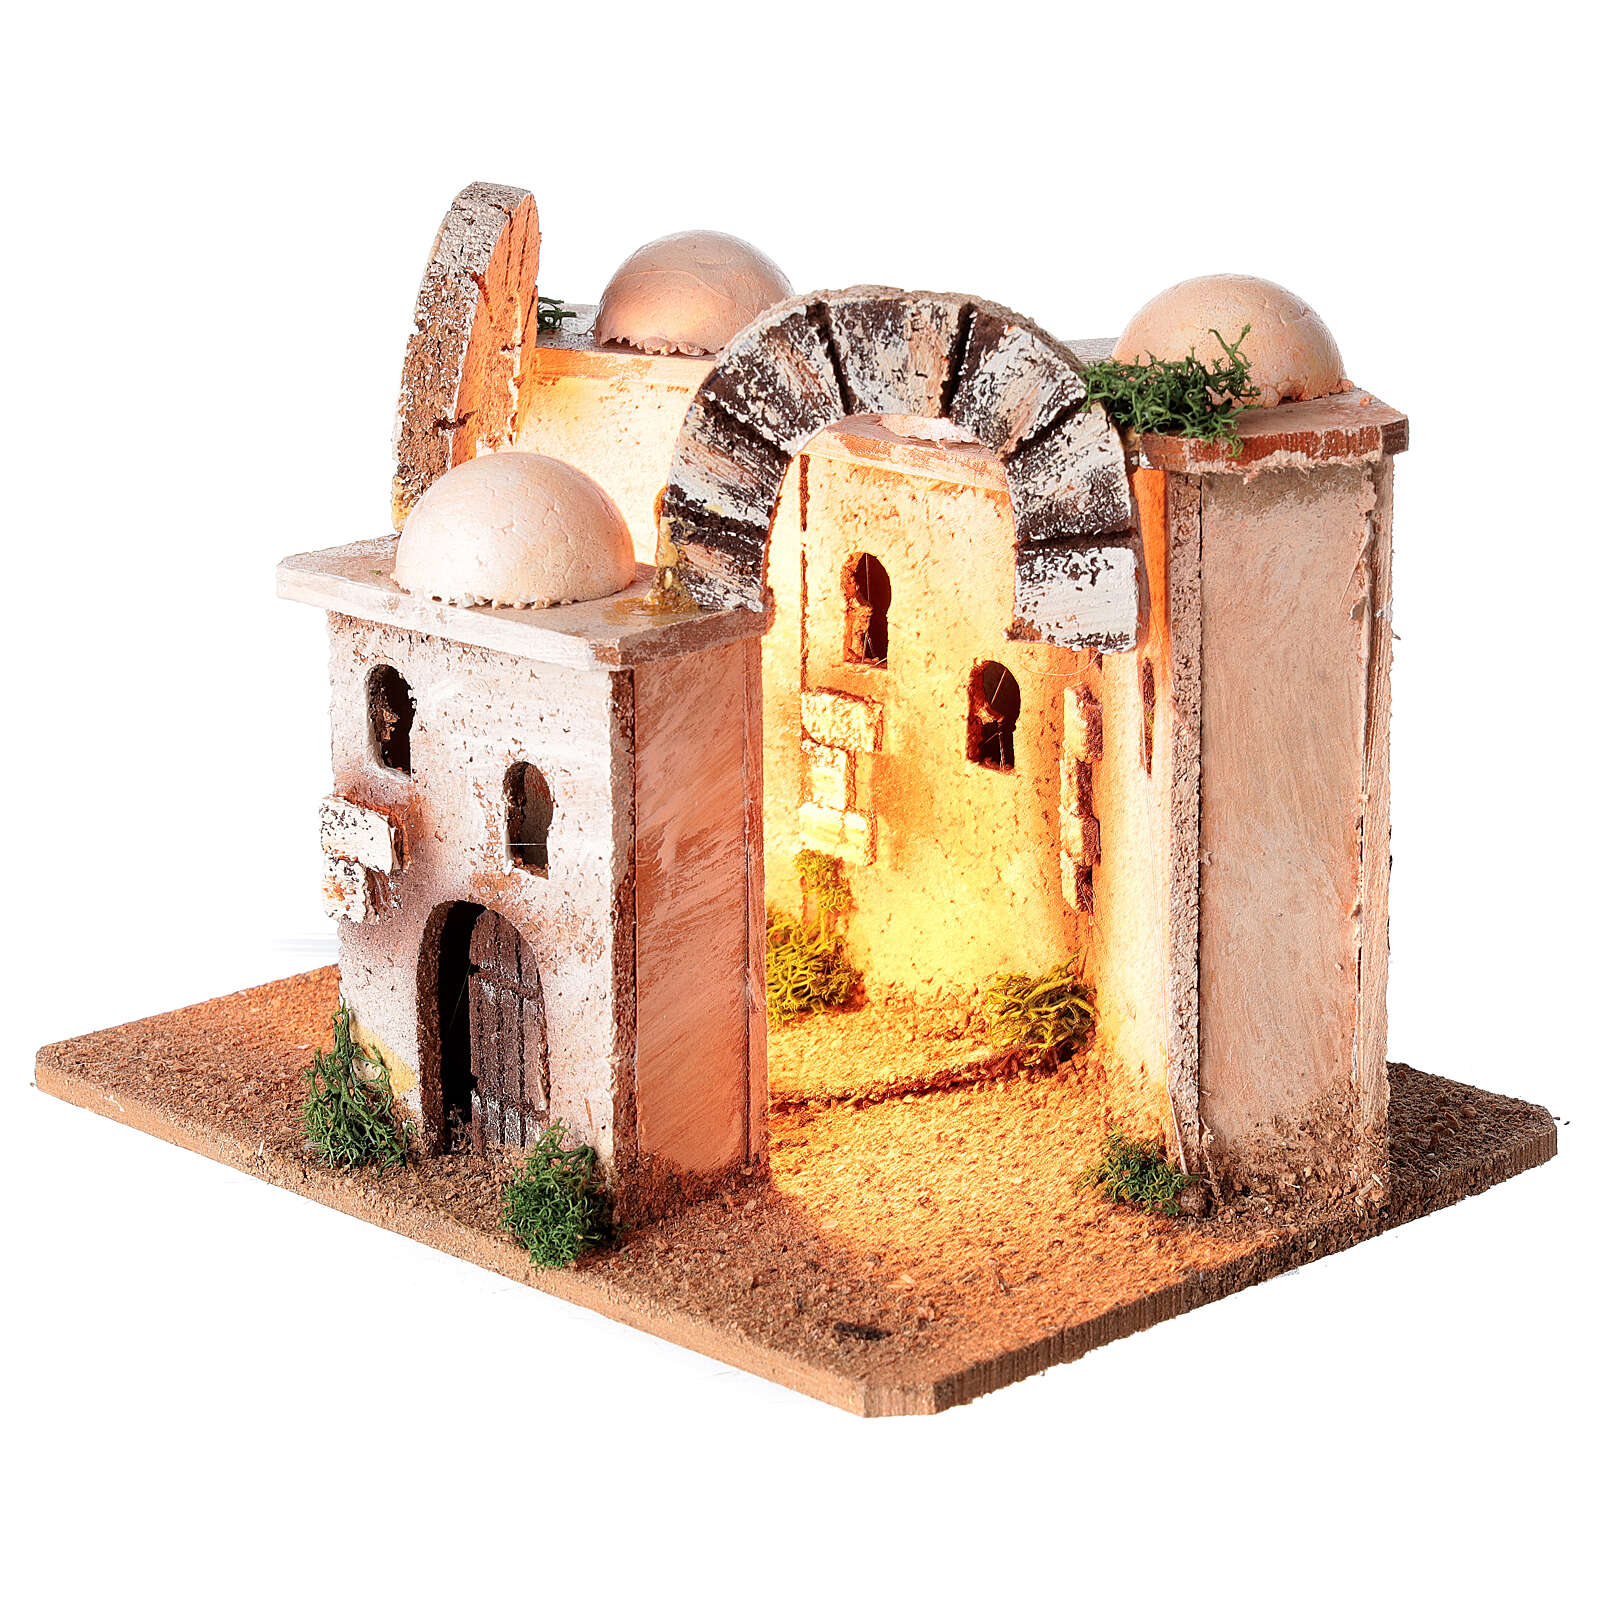 Illuminated minaret setting 15x20x15 cm for Nativity Scene with 4-6 cm figurines 4